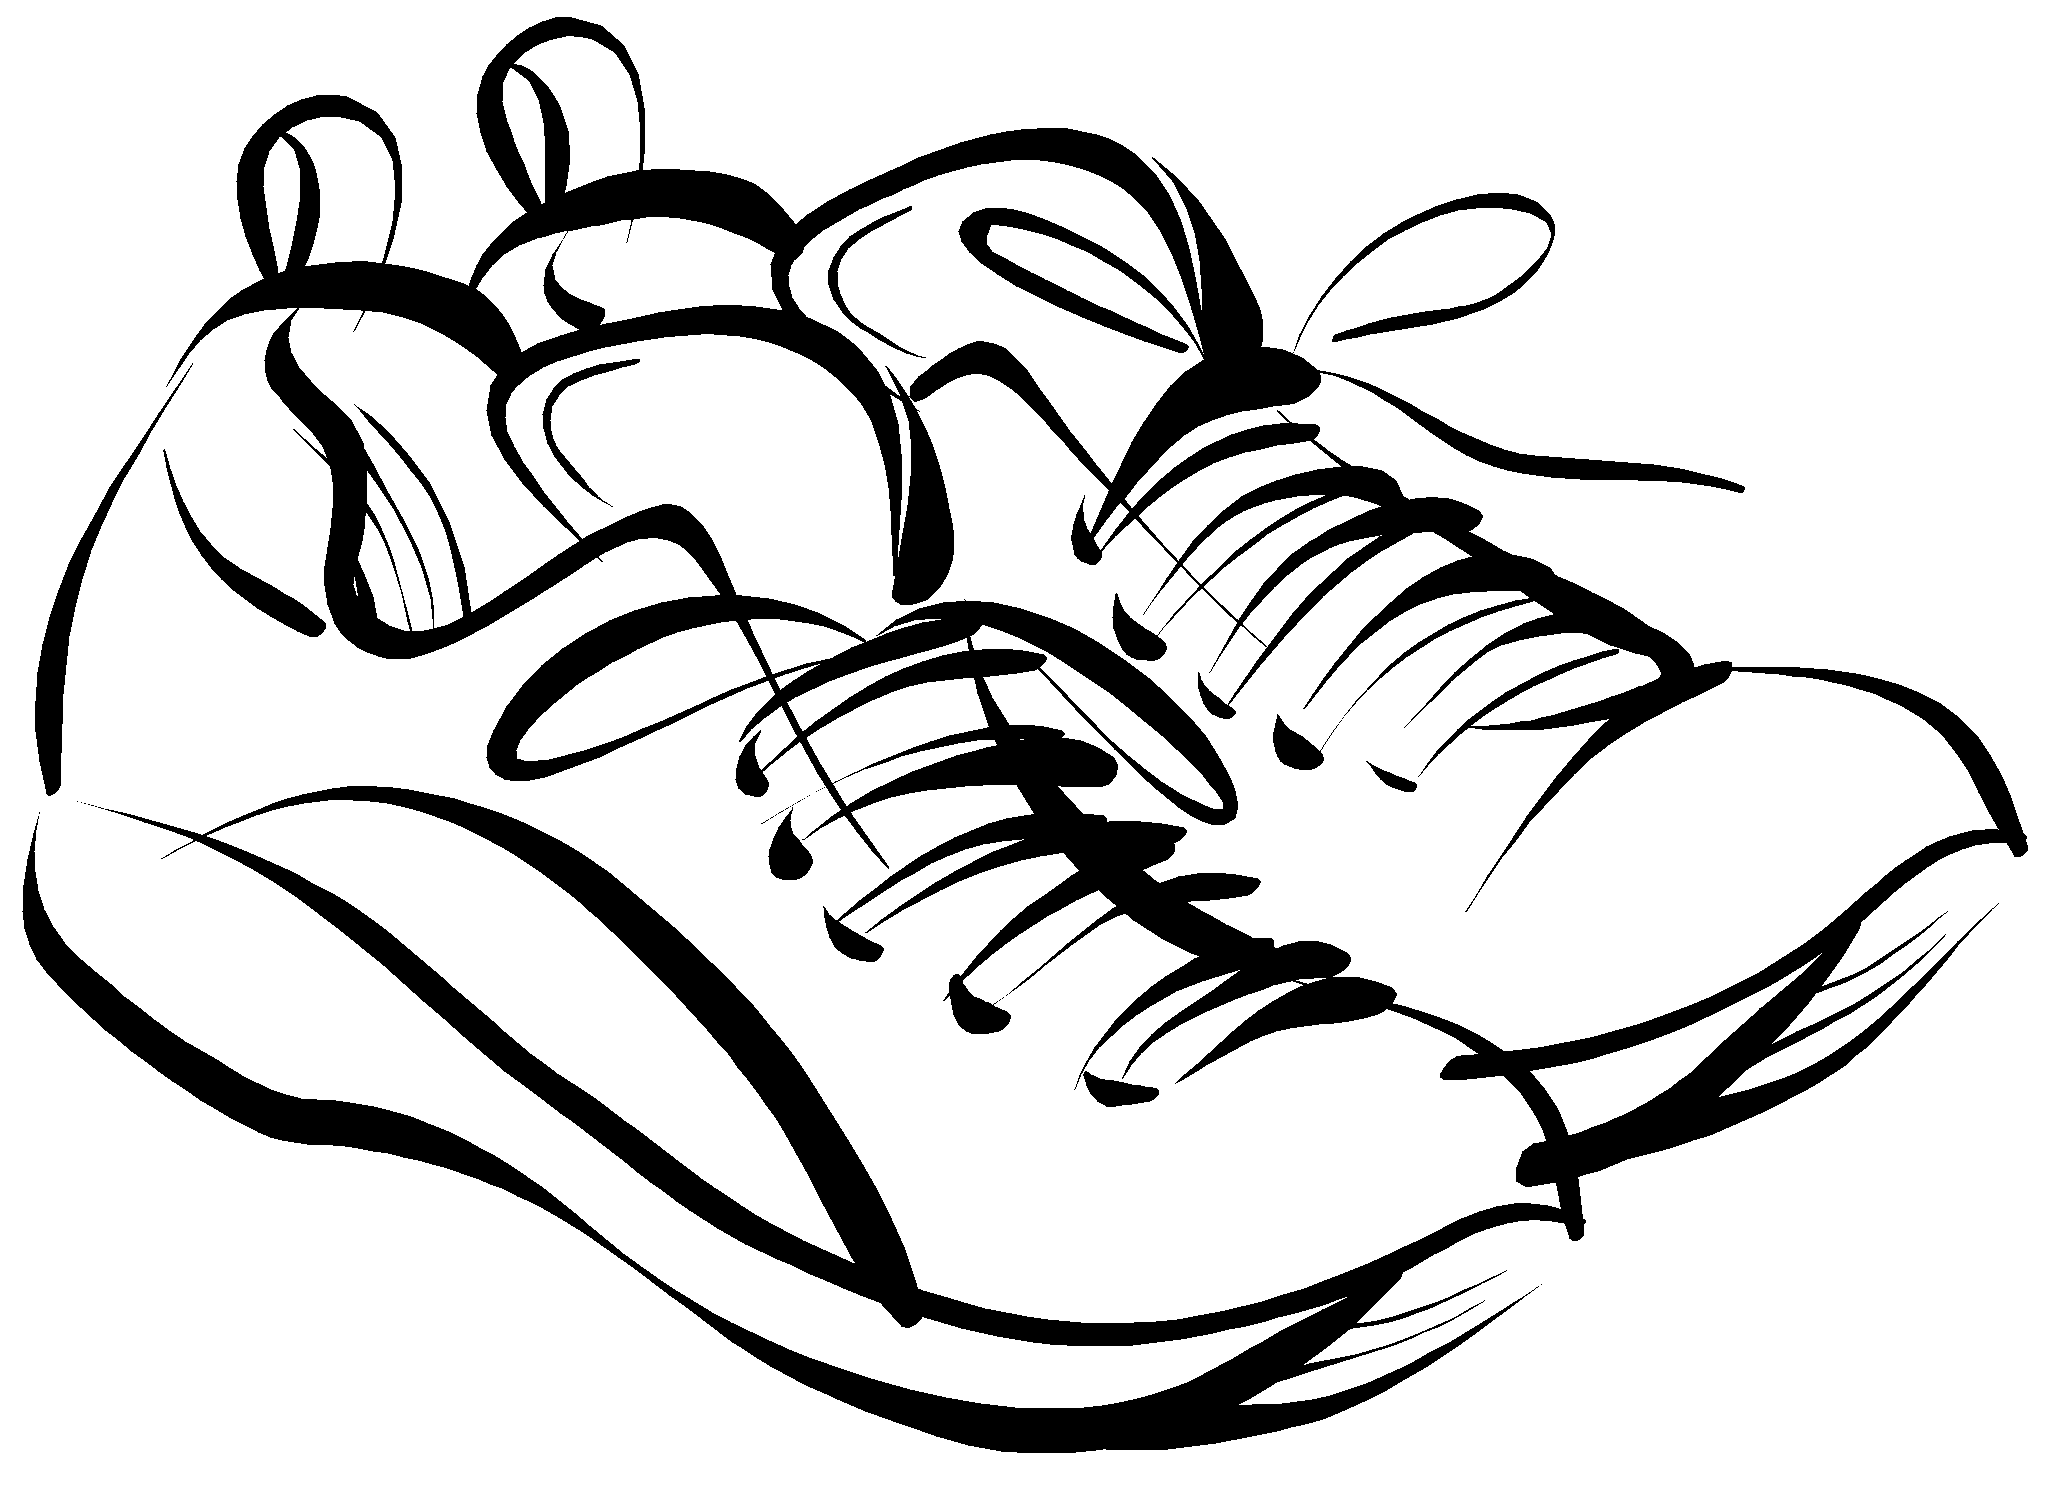 Free clipart tennis shoes picture free Free clip art of tennis shoes clipart 1 shoe - ClipartPost picture free